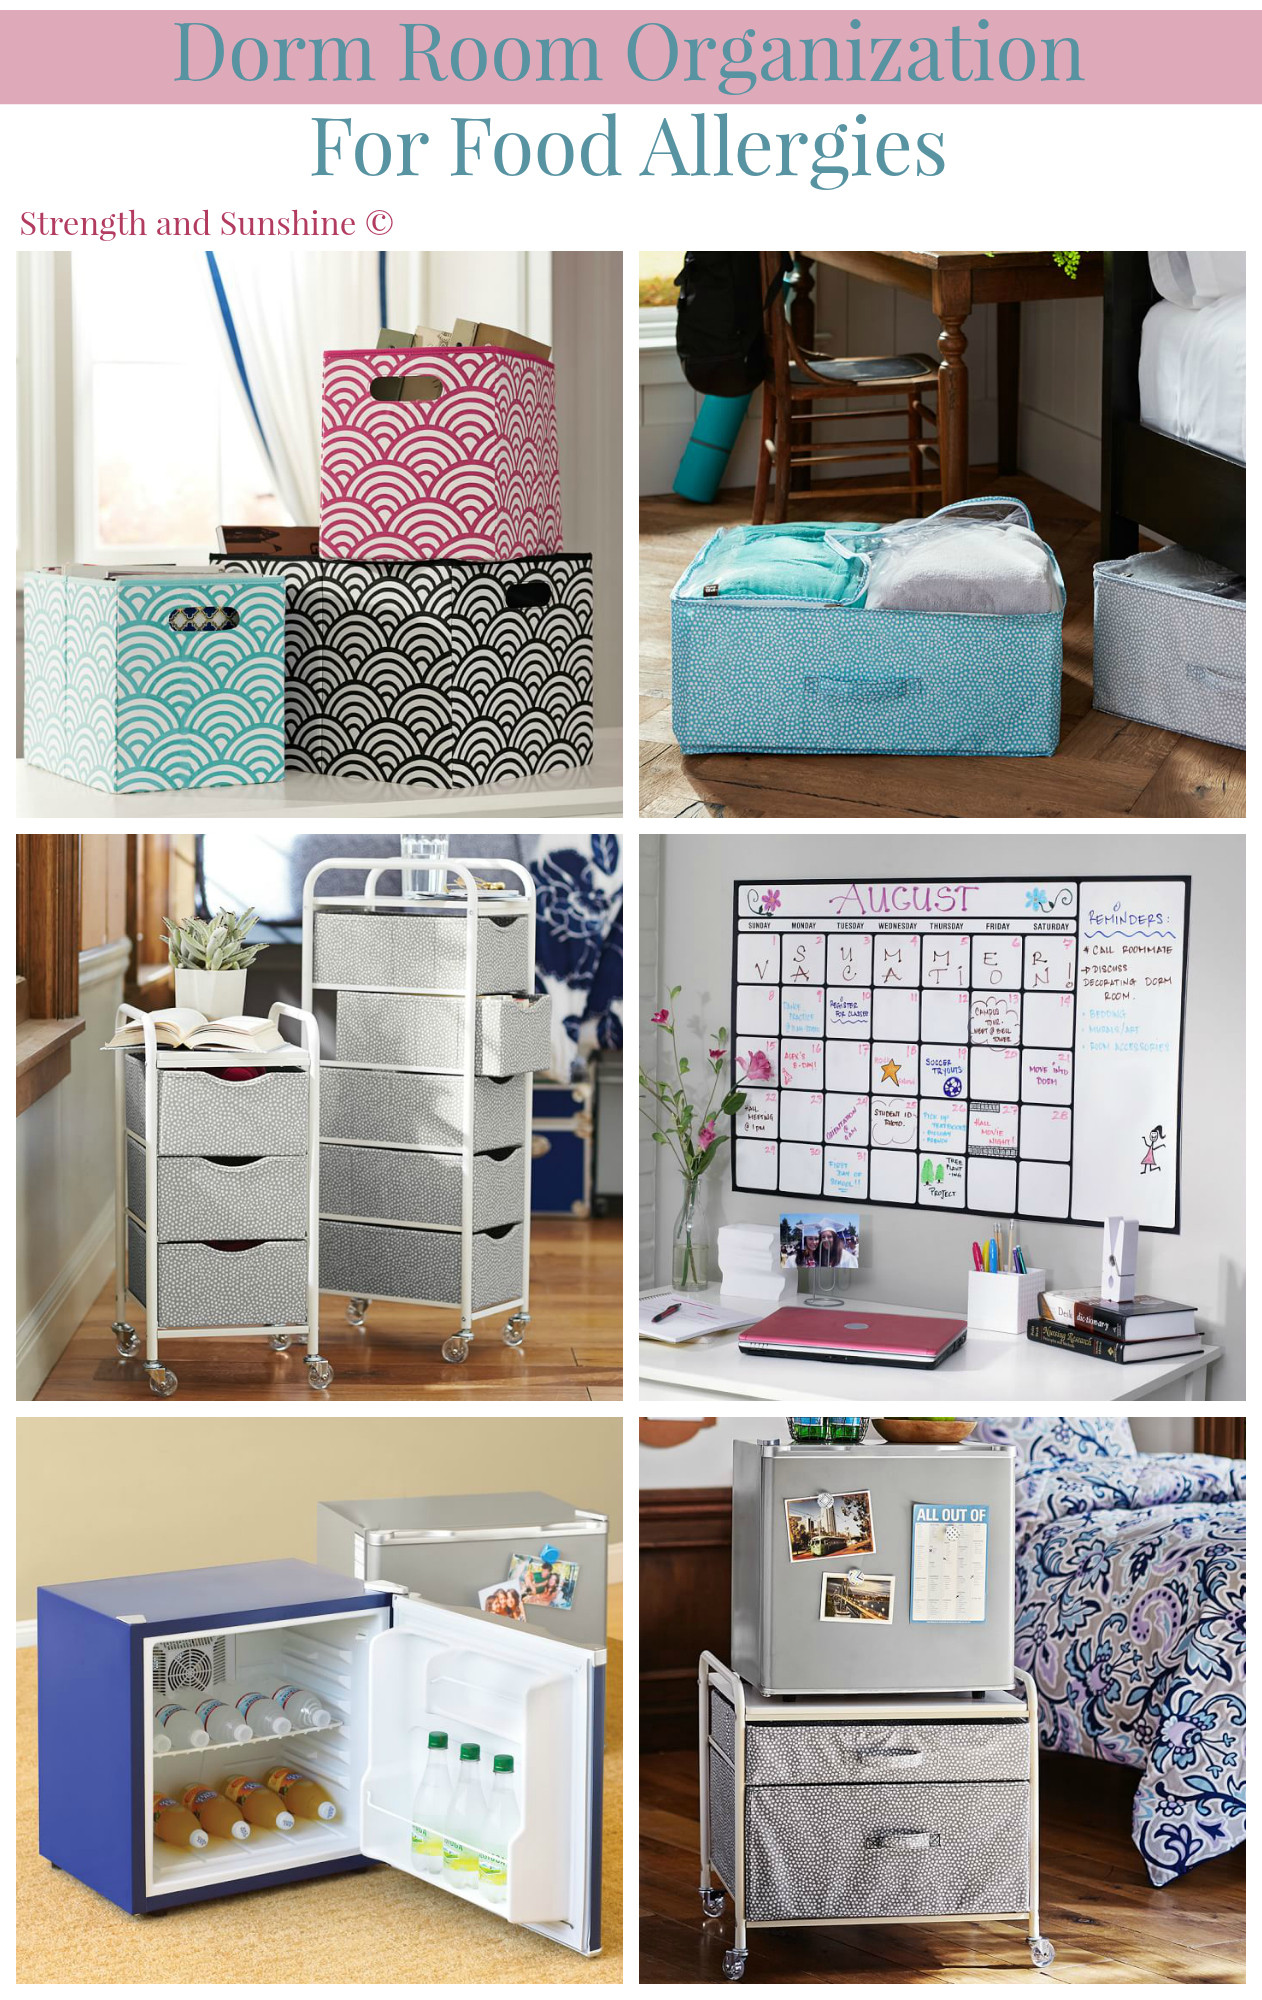 Dorm Room organization Dorm Room organization for Food Allergies Strength and